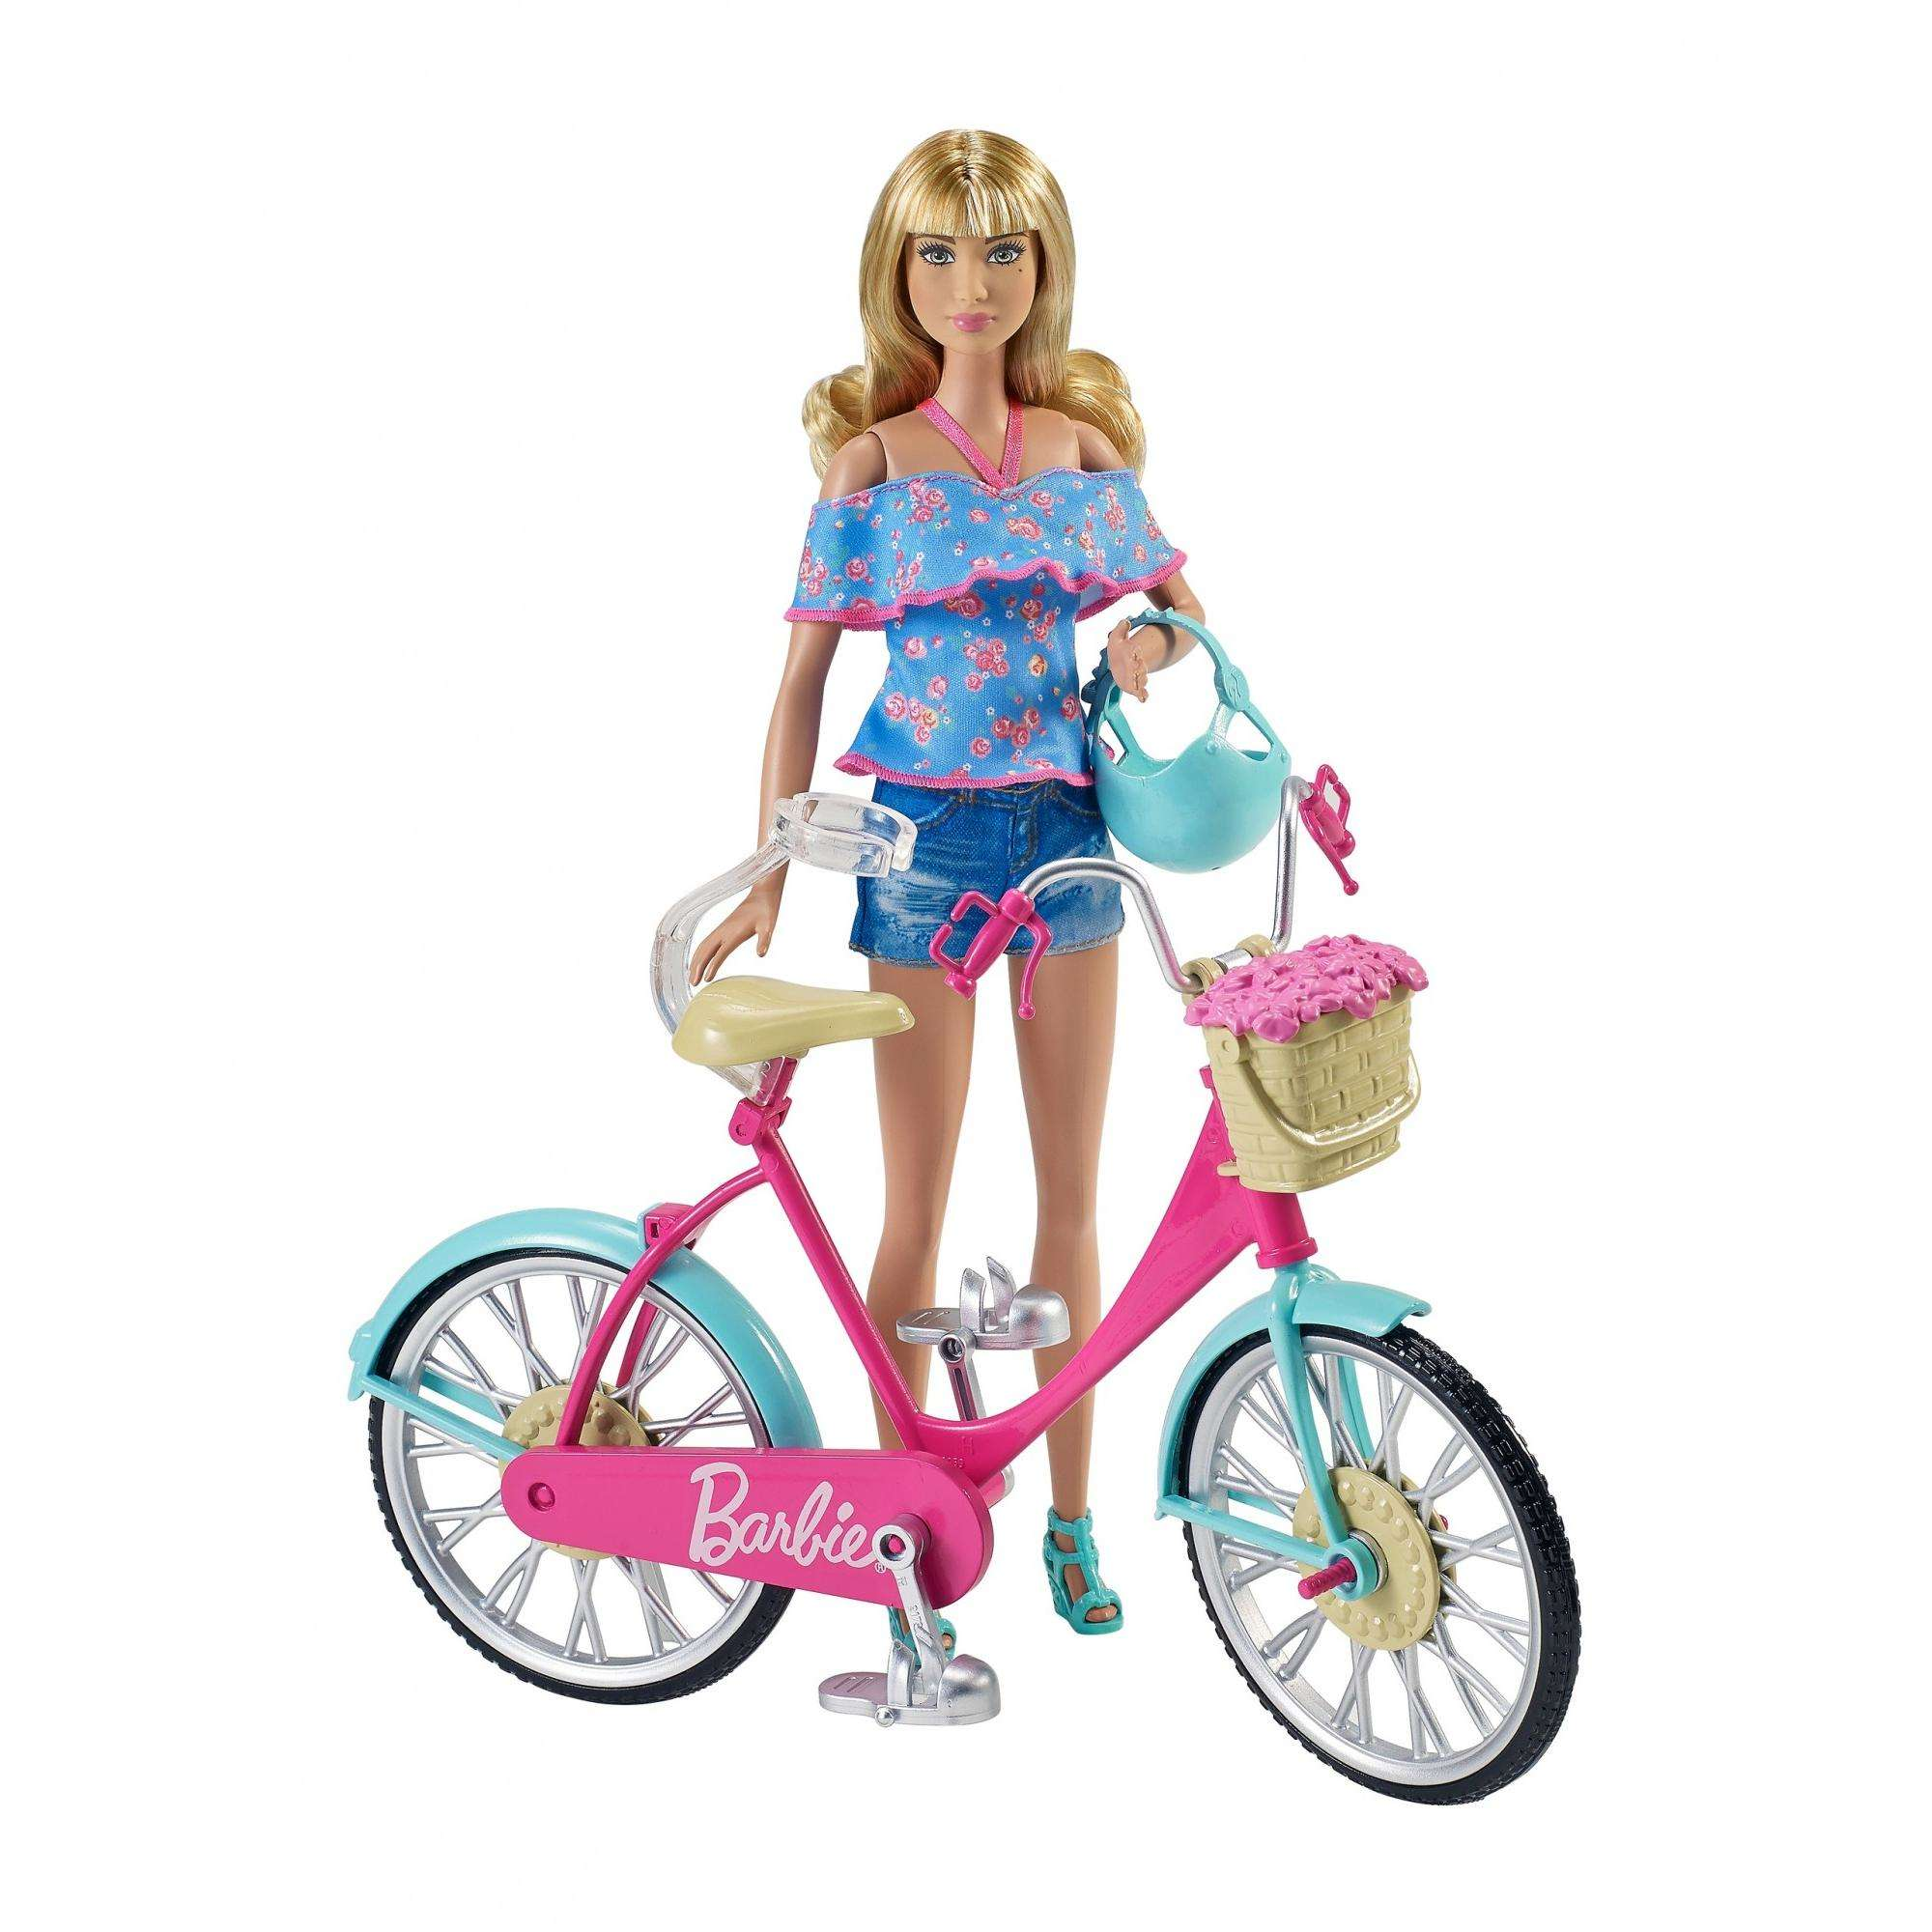 Barbie Riding Bicycle with Flower Basket and Helmet by MATTEL INC.